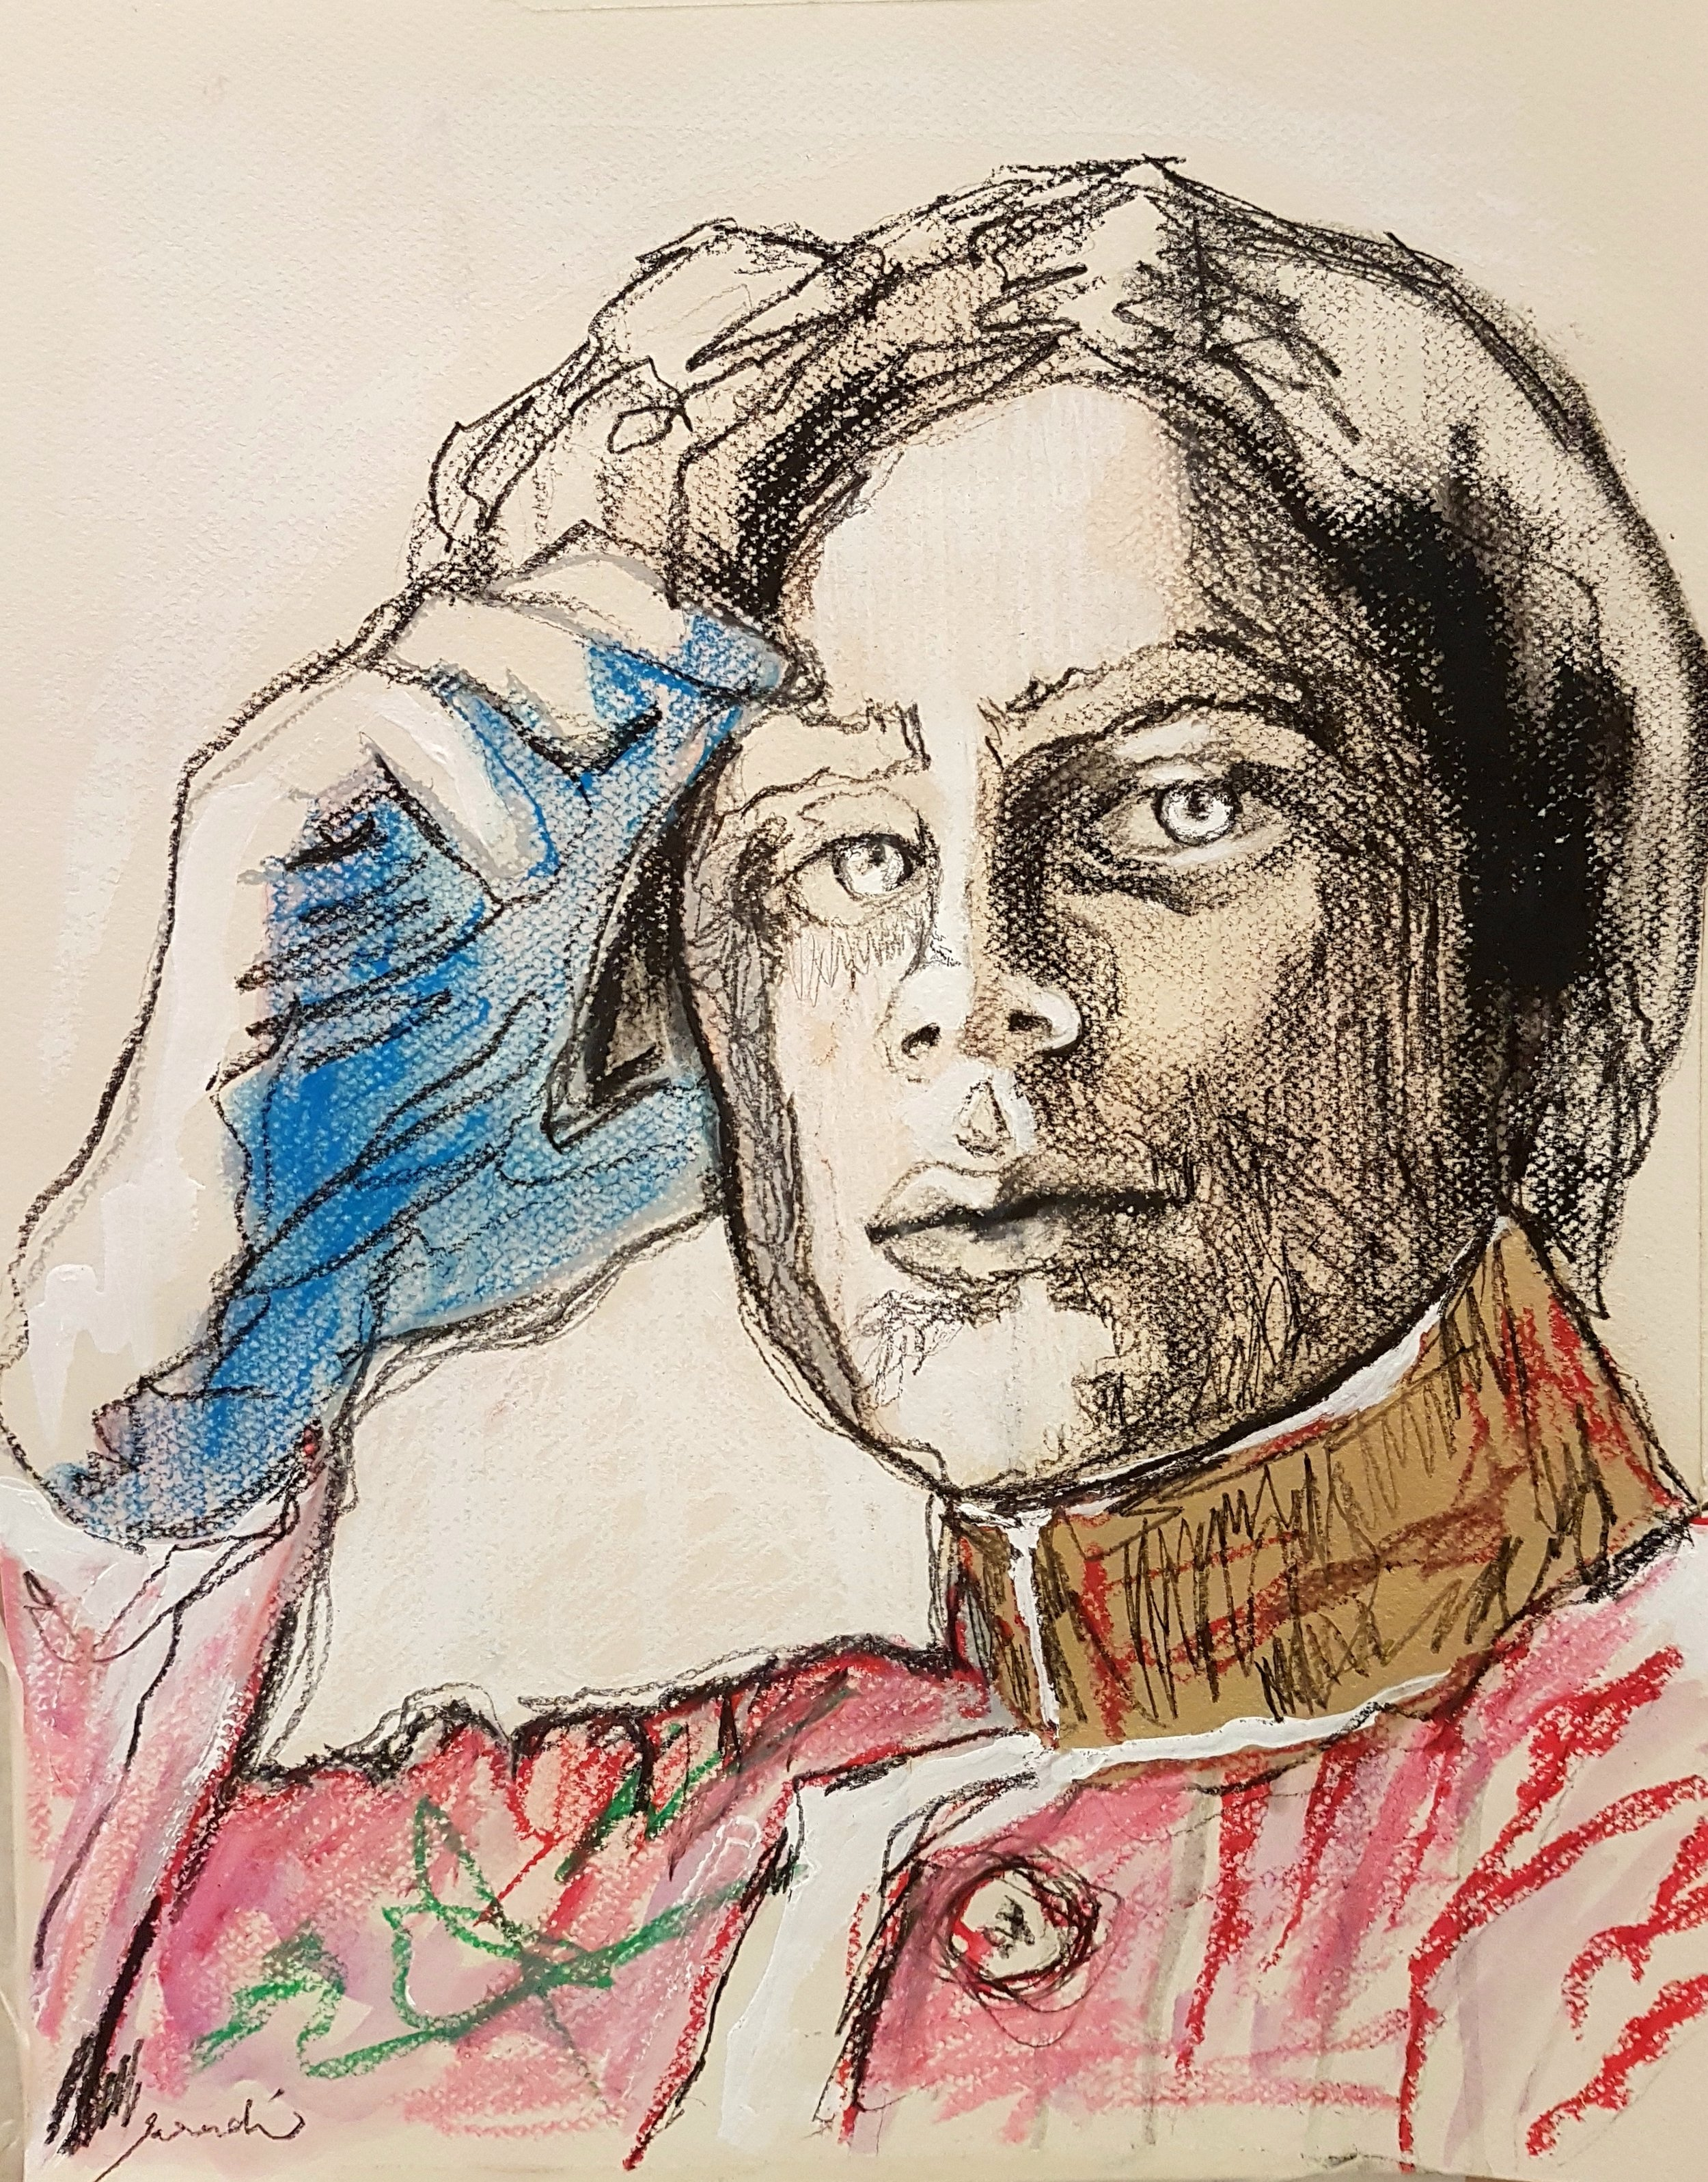 Sarah Aradi, Young Gibran, 2018. Charcoal, water colours, acrylic, spray paint, oil & soft pastel on paper. Courtesy of the artist and CARAVAN